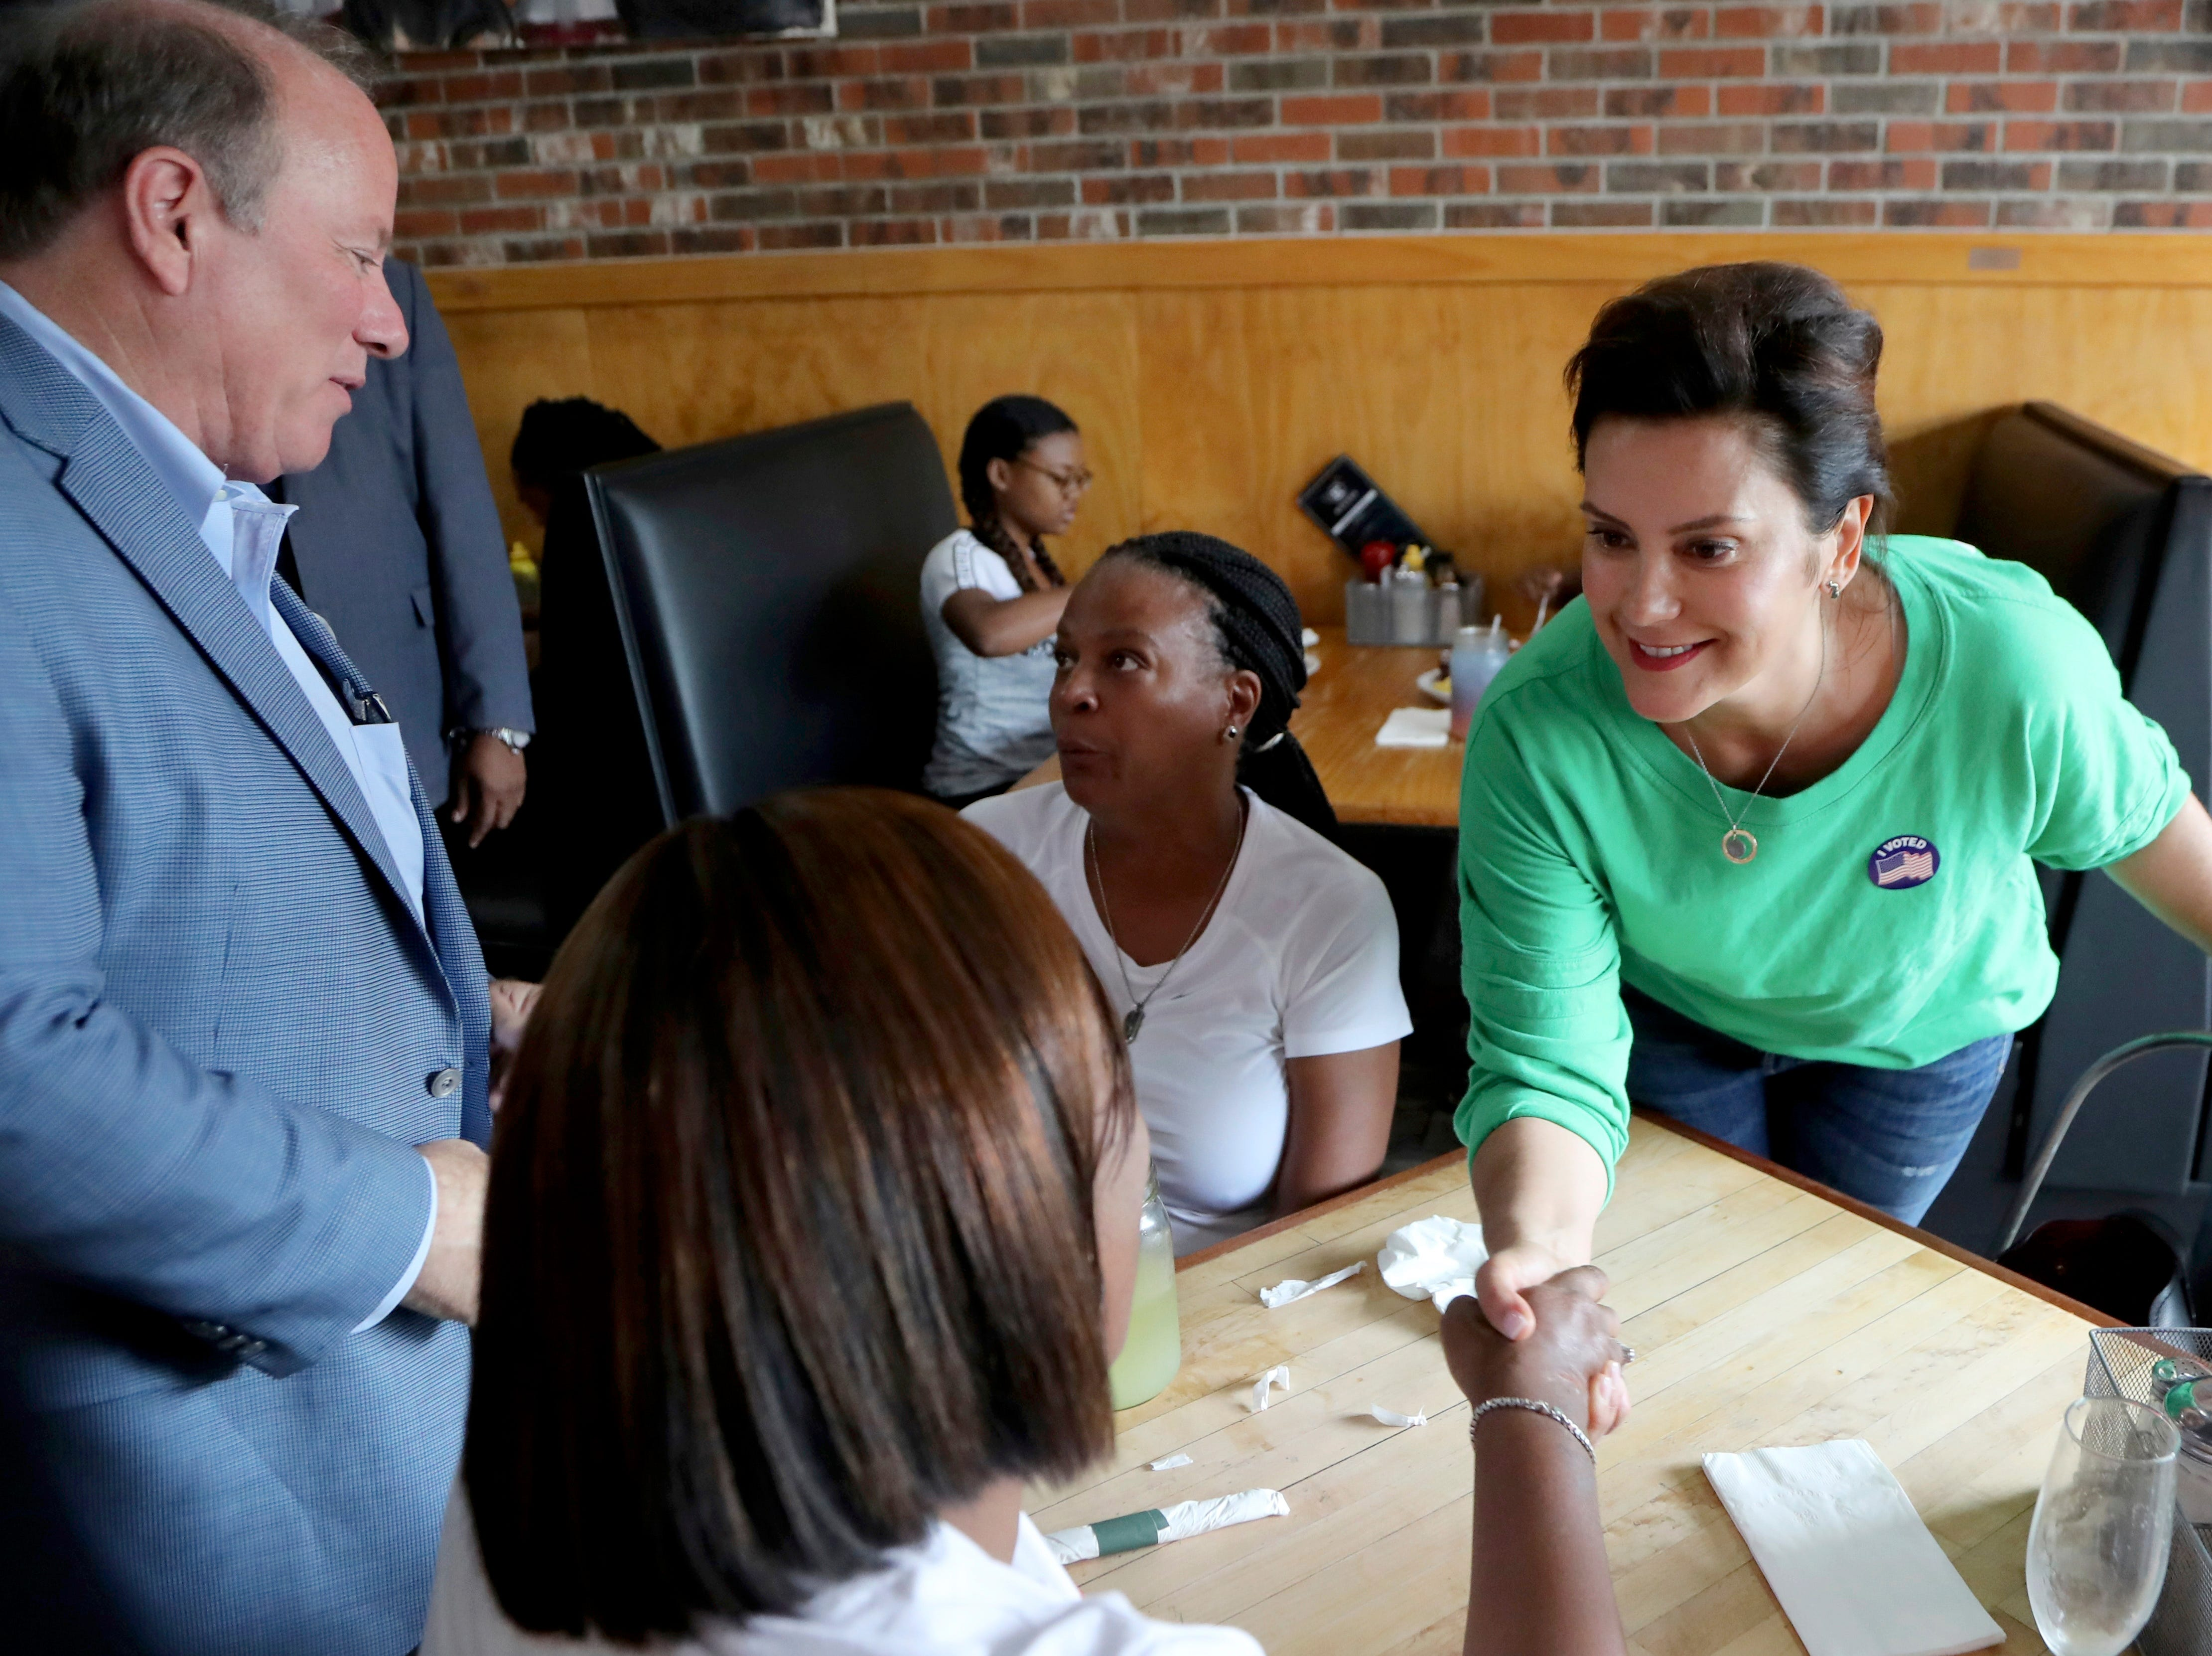 Michigan Democratic gubernatorial candidate Gretchen Whitmer and Detroit Mayor Mike Duggan visit with patrons at a restaurant on the city's north side, Tuesday, Aug. 7, 2018, in Detroit.